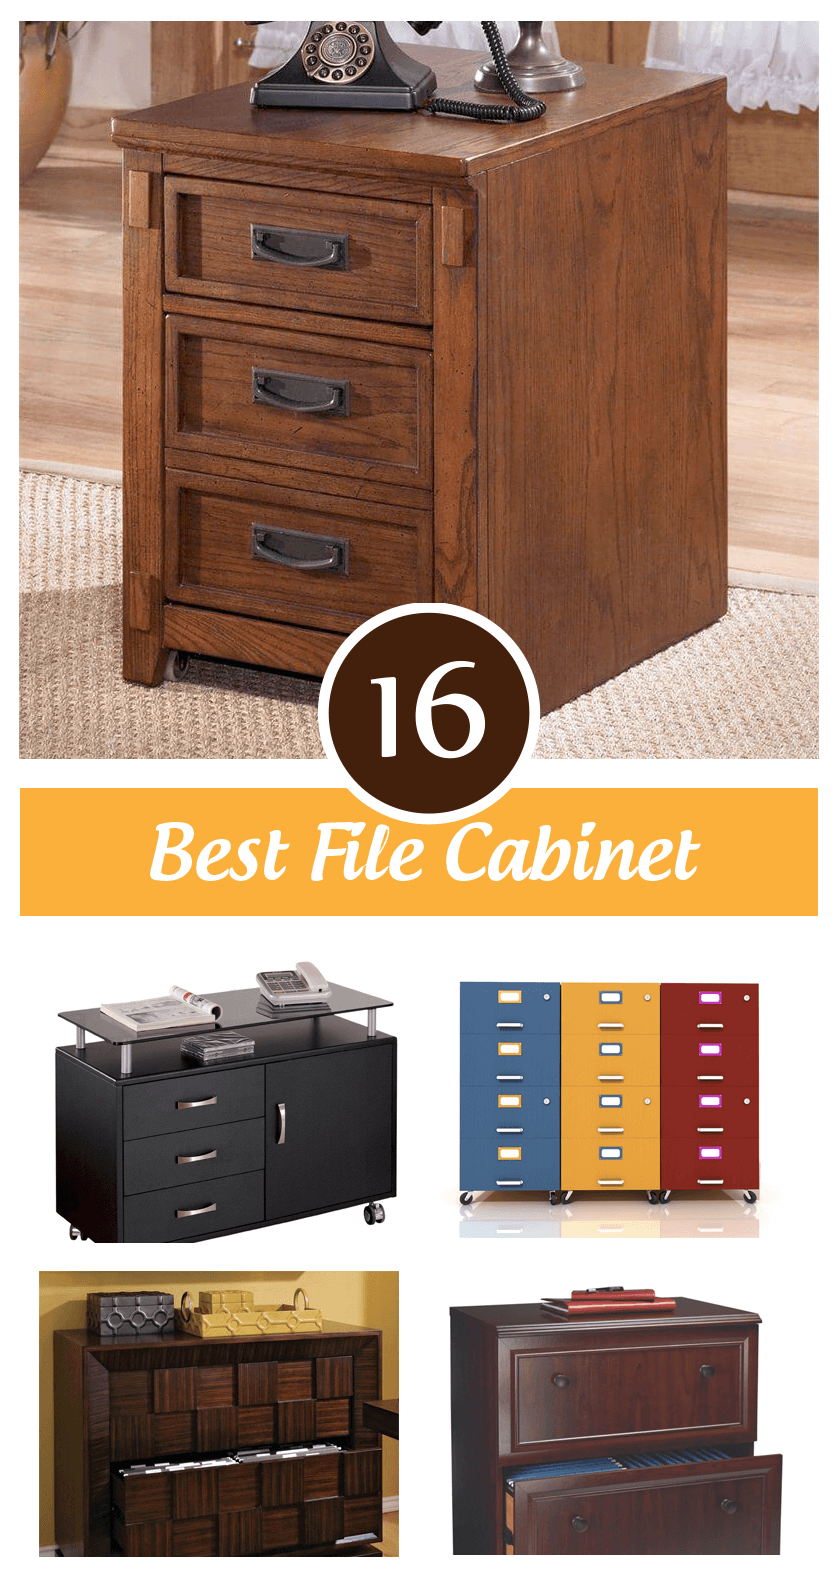 Decorative File Cabinets For Home